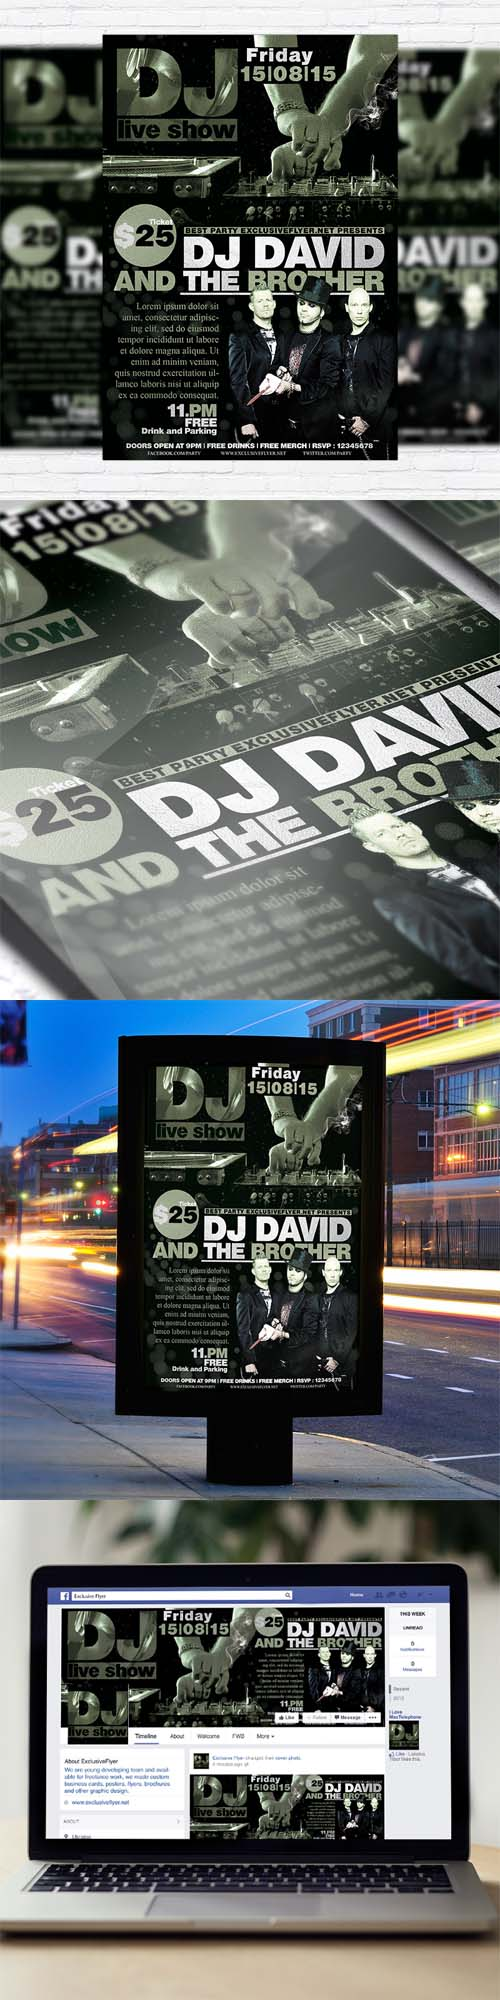 Flyer Template - DJ Live Show Vol.2 + Facebook Cover